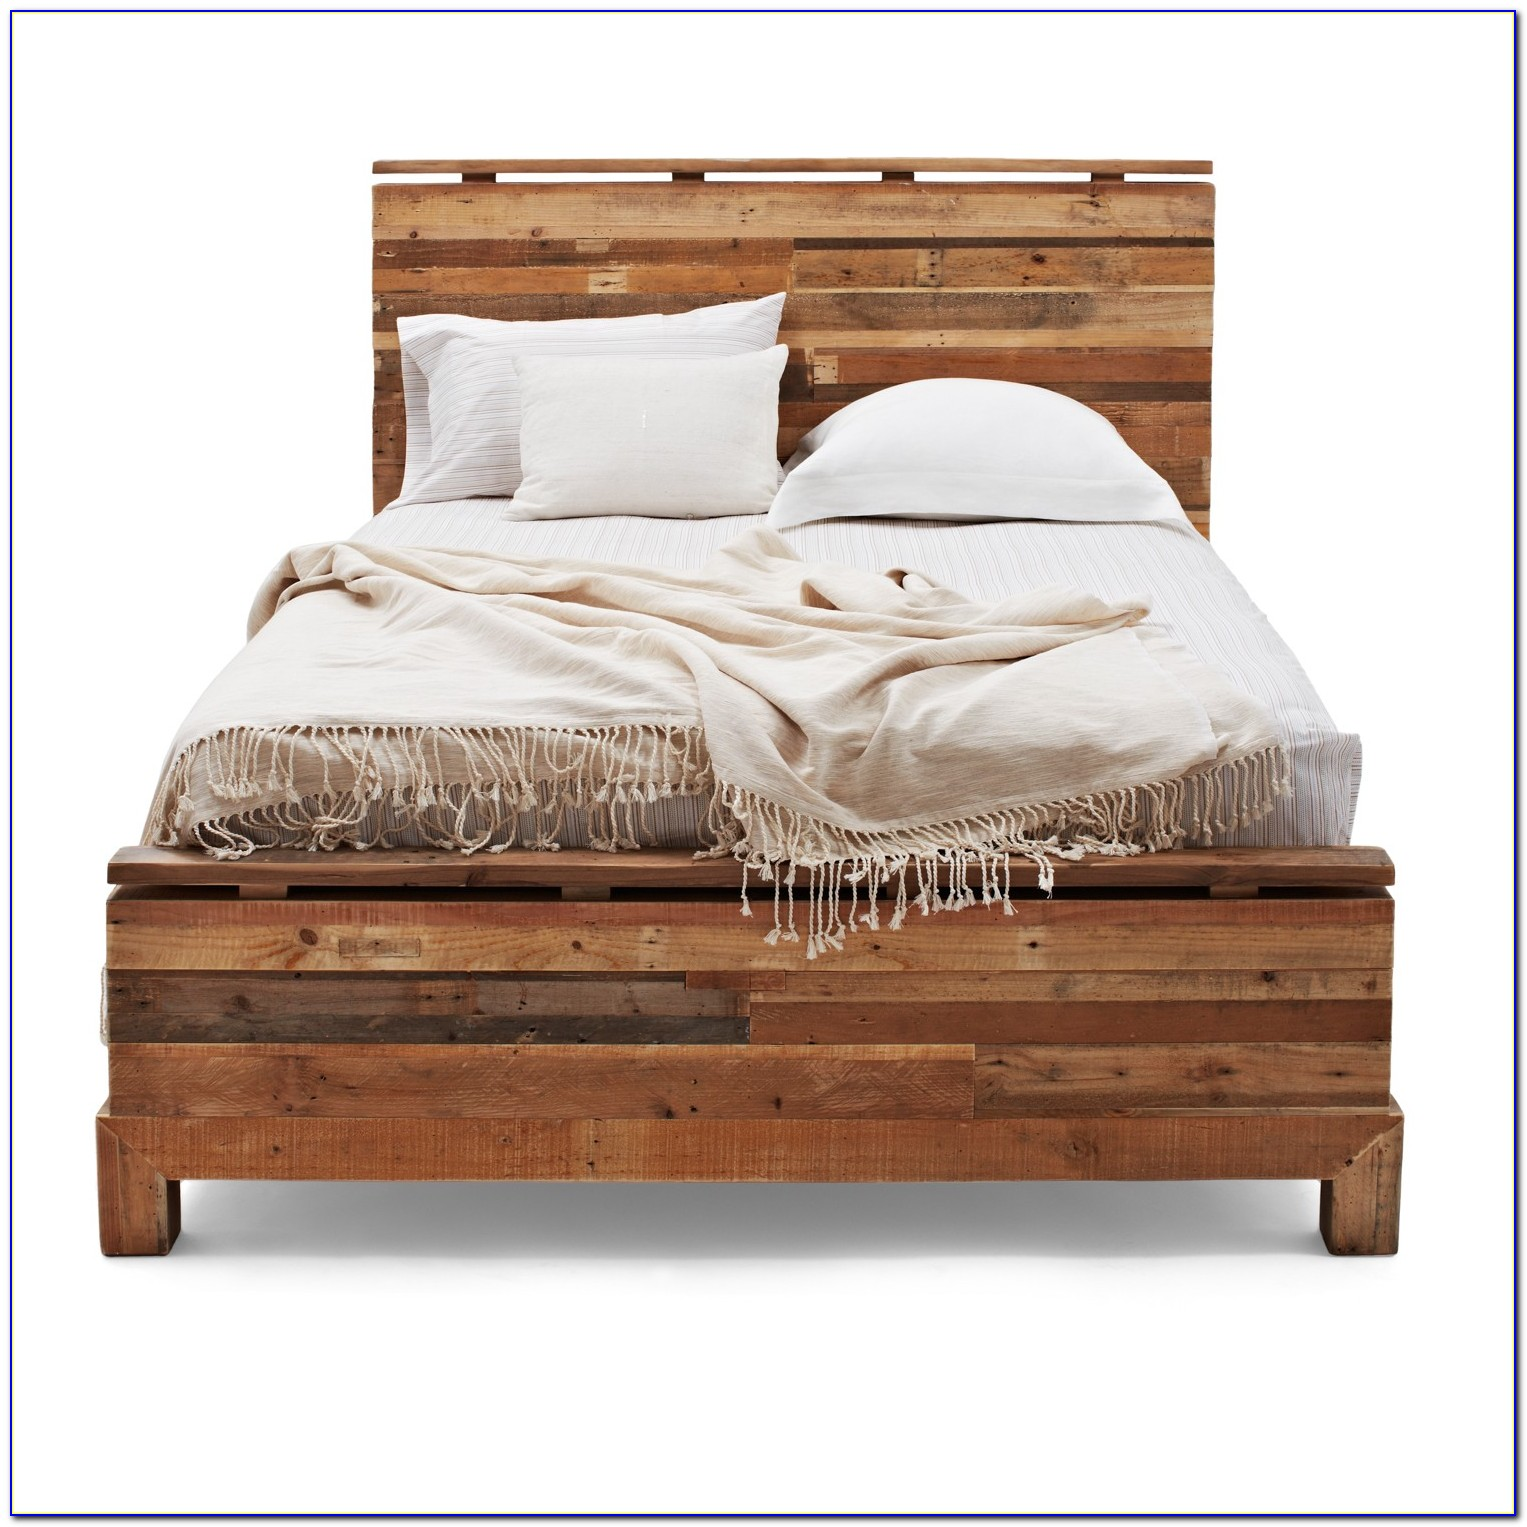 Wood Bed Frame With Headboard